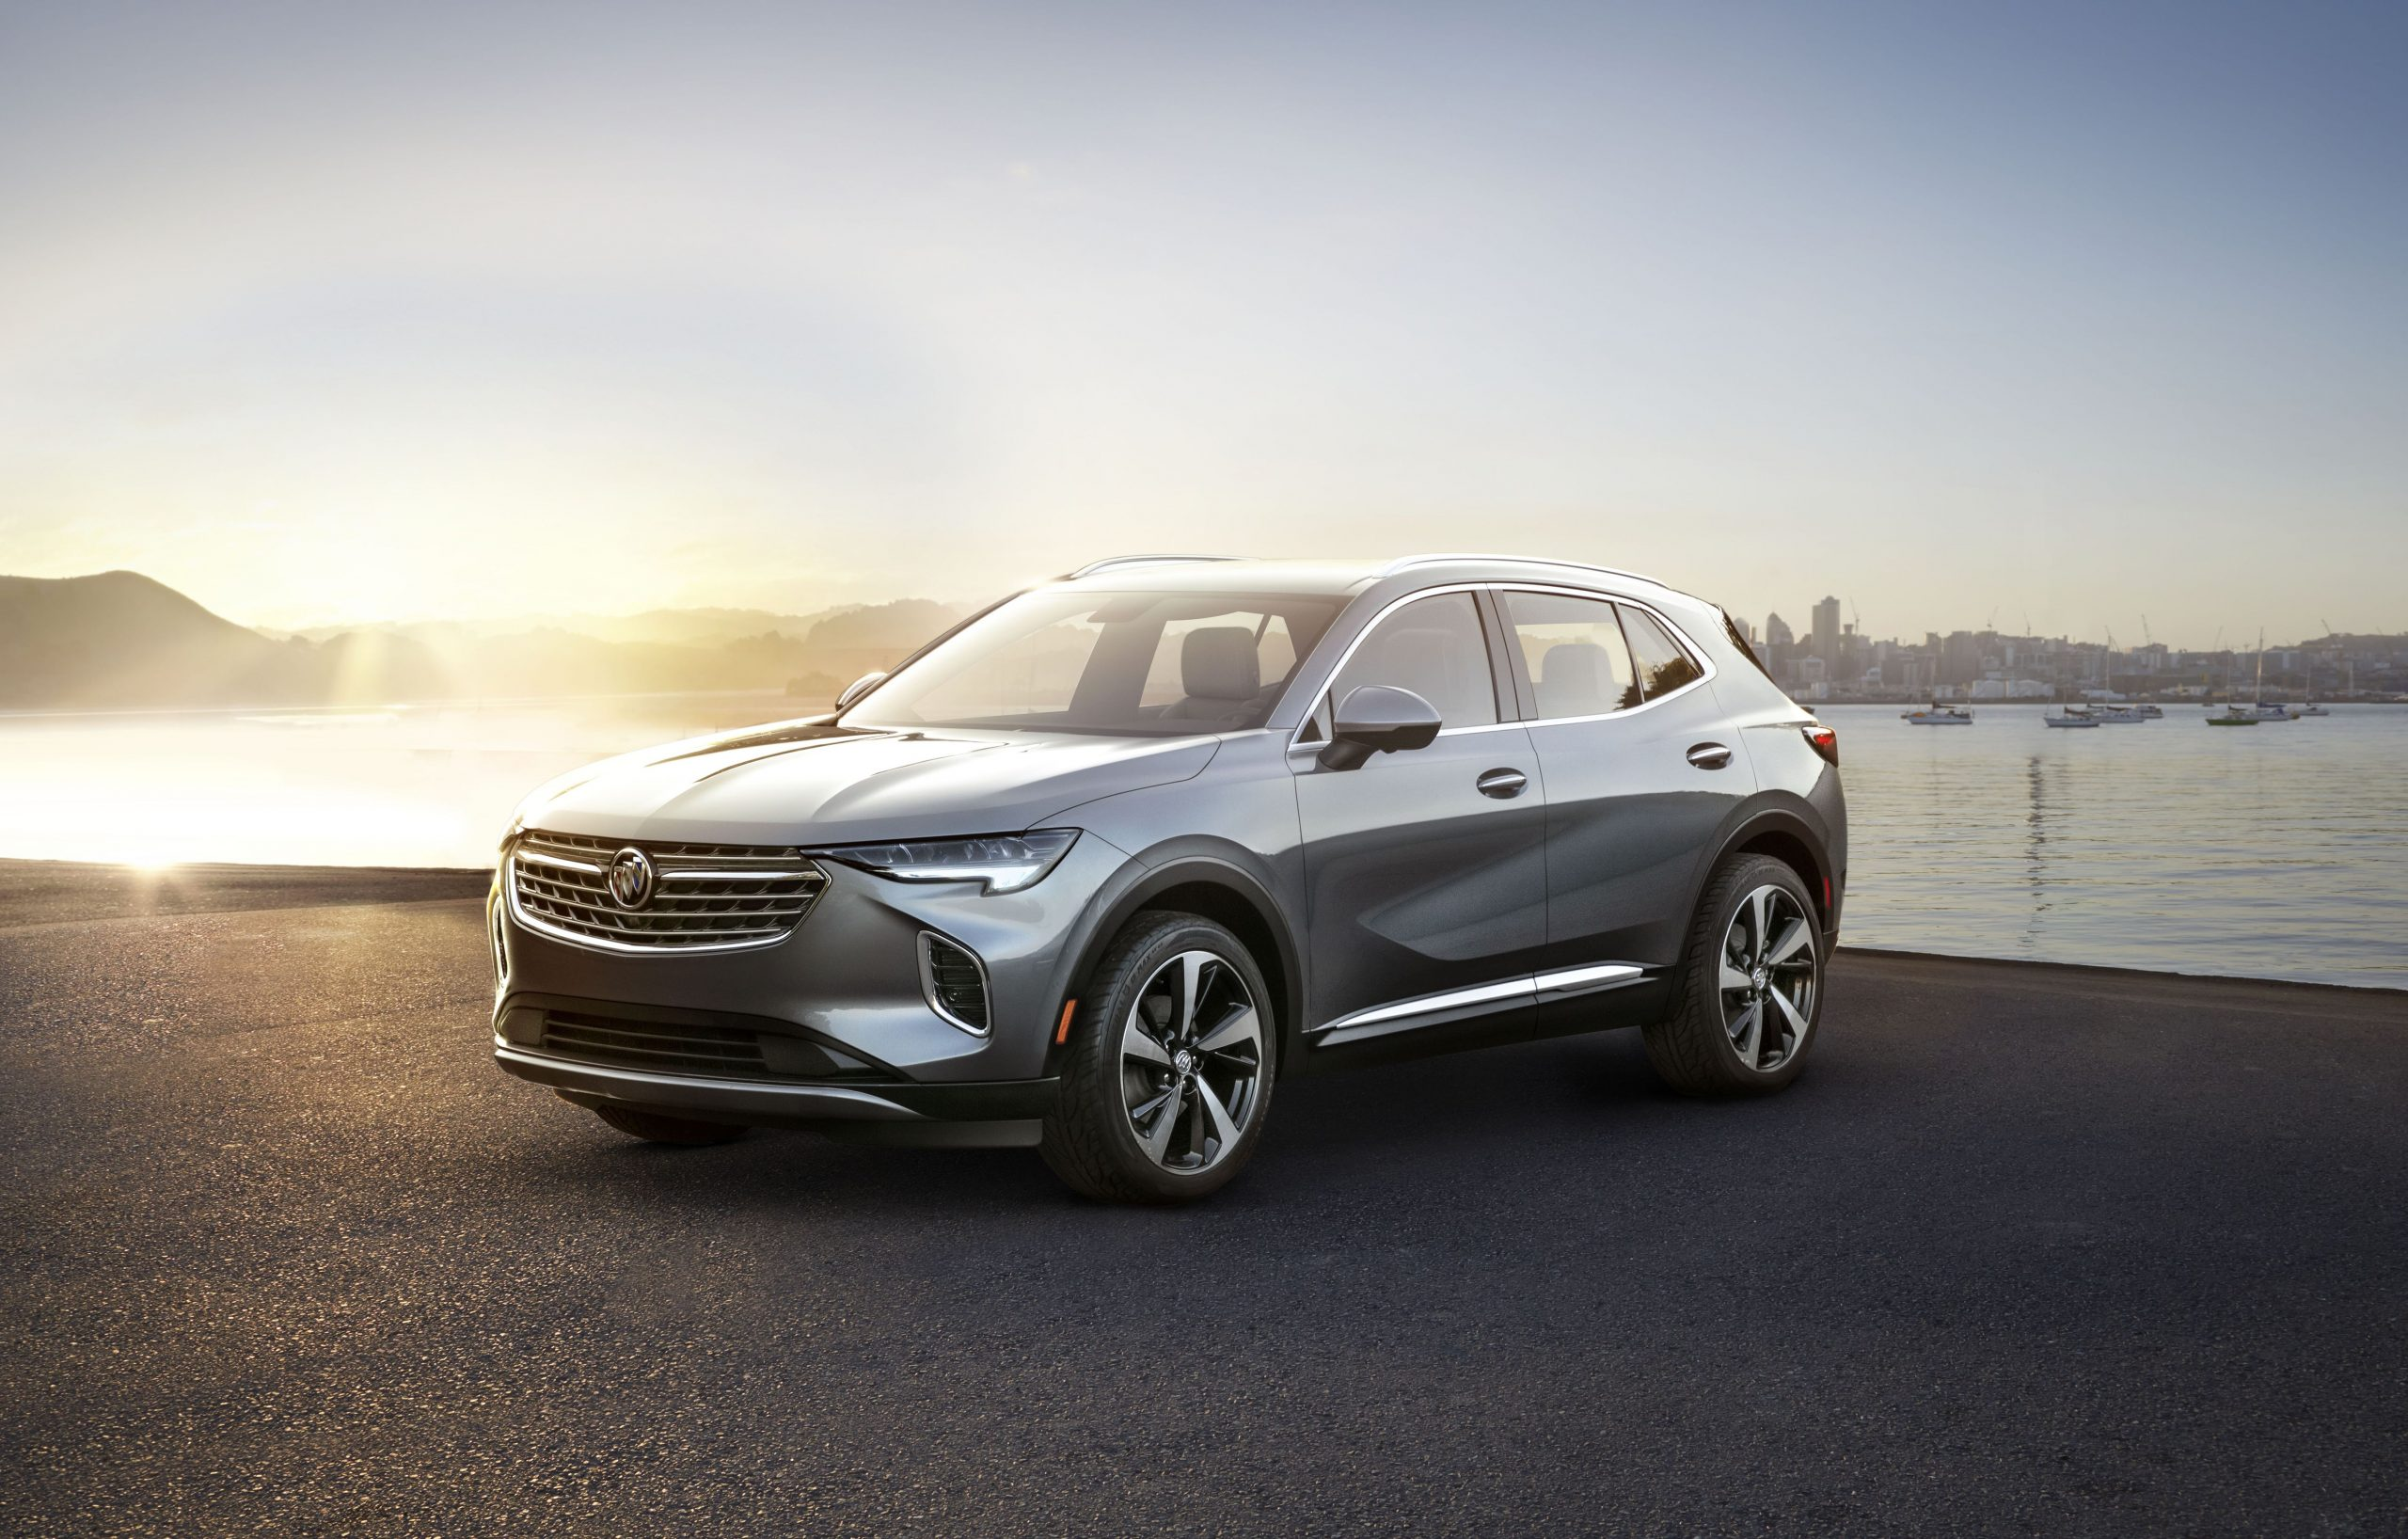 2021 Buick Envision Gets A Surprisingly Attractive Redesign Is The 2022 Buick Envision A Good Car